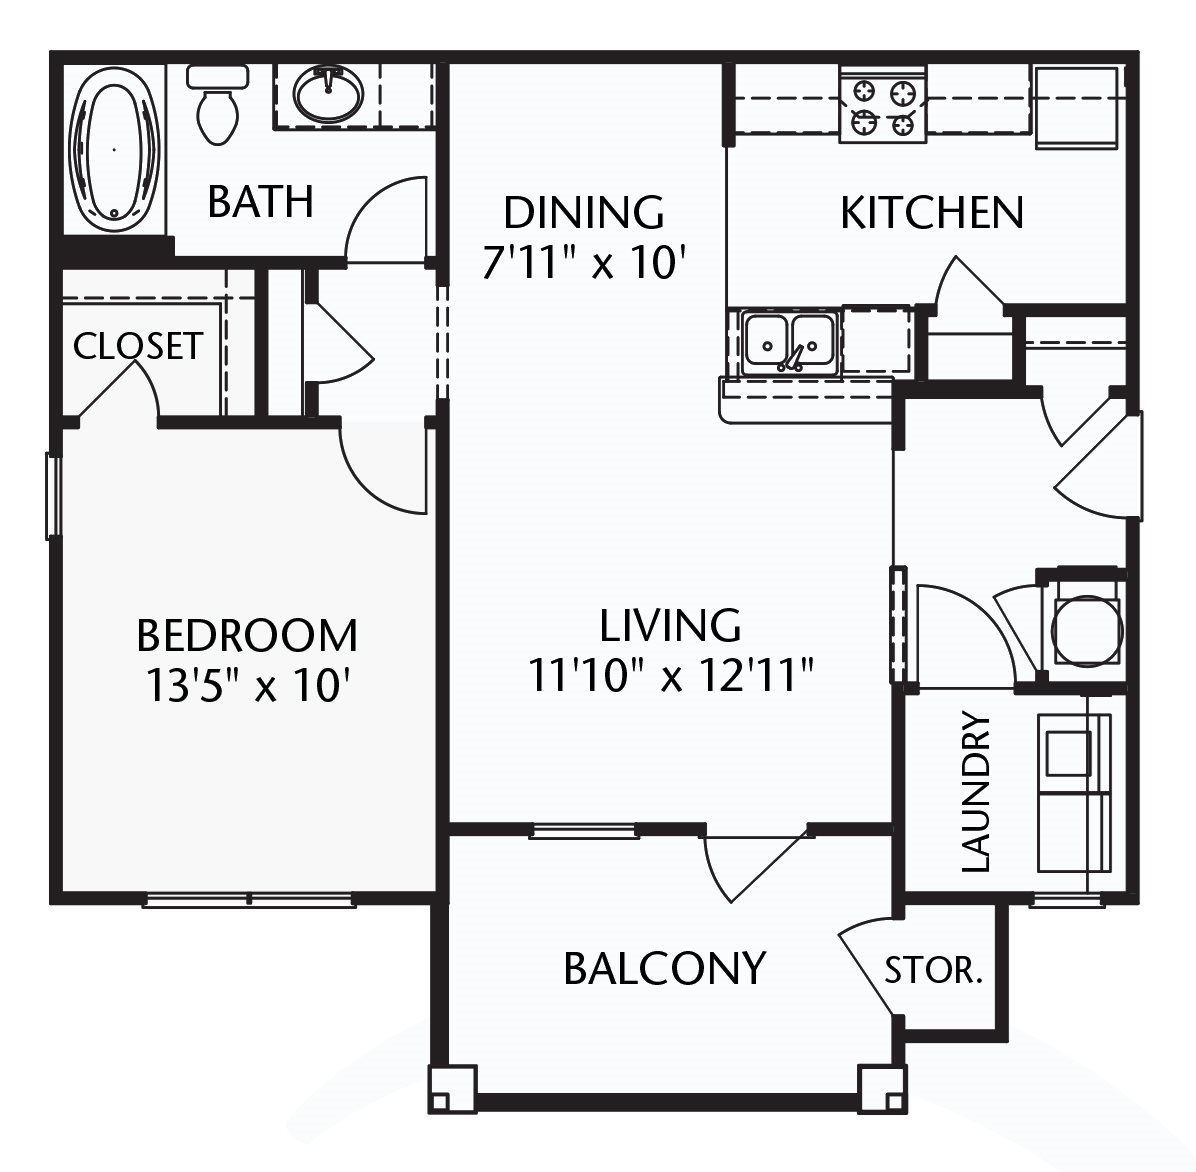 The Legion (corporate/furnished) Floorplan at Ultris Patriot Park